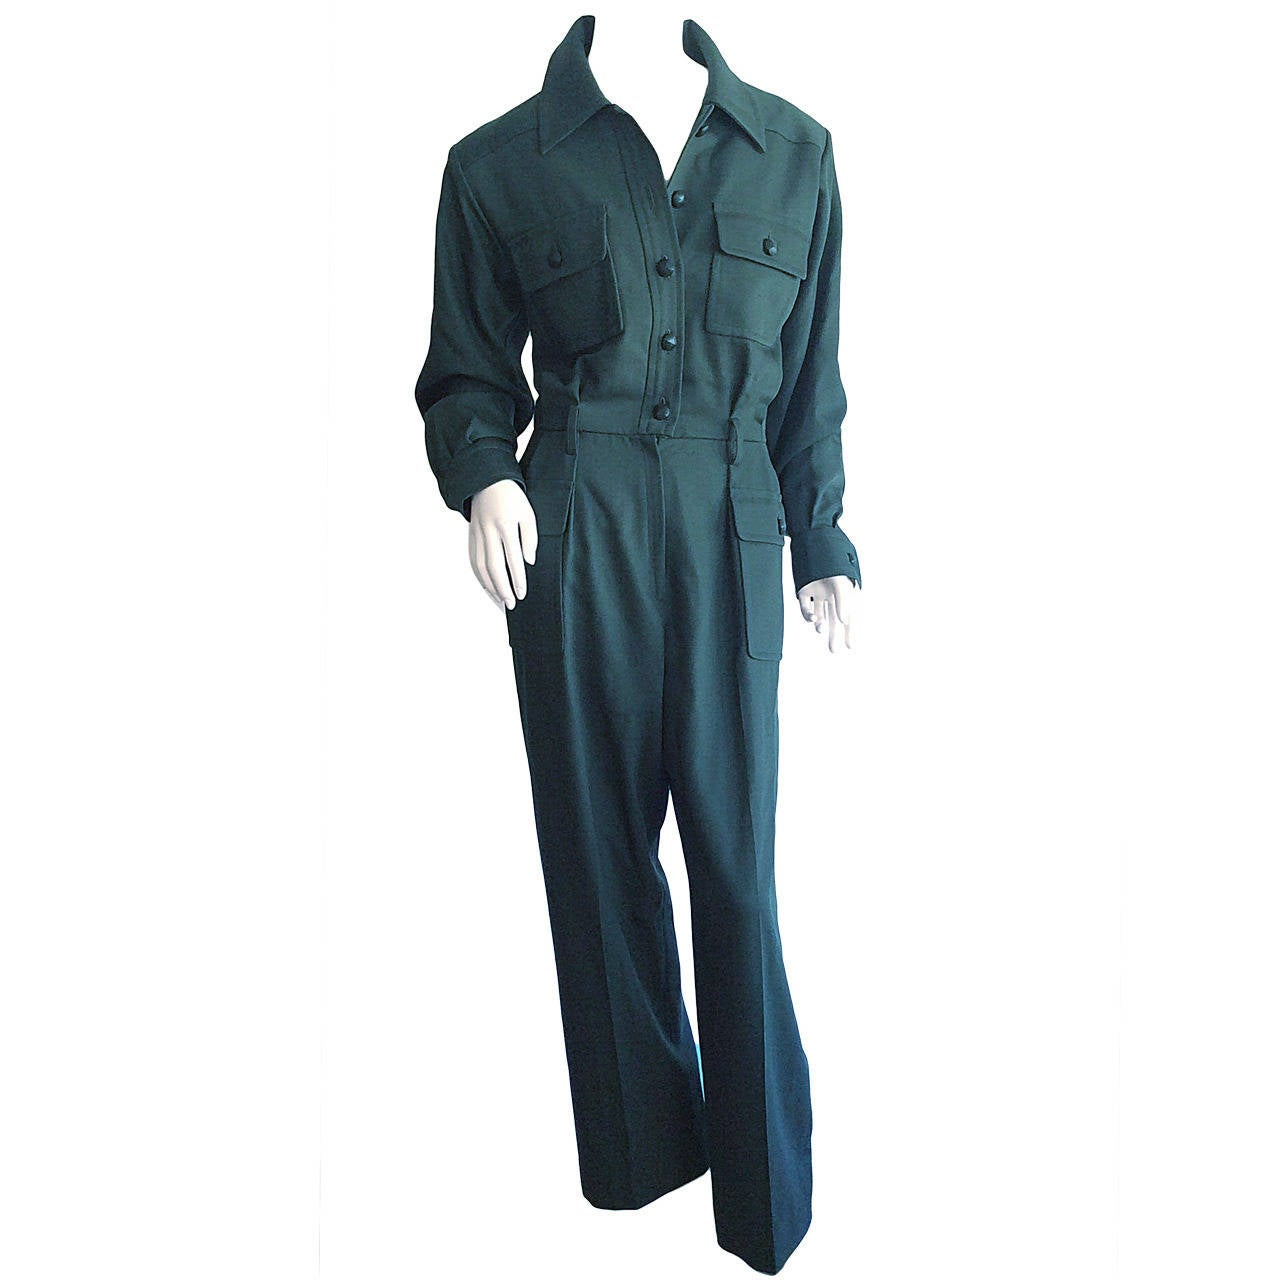 26e5cc14c1a Iconic Vintage Yves Saint Laurent ' Rive Gauche ' Army Green Jumpsuit  Onesie For Sale